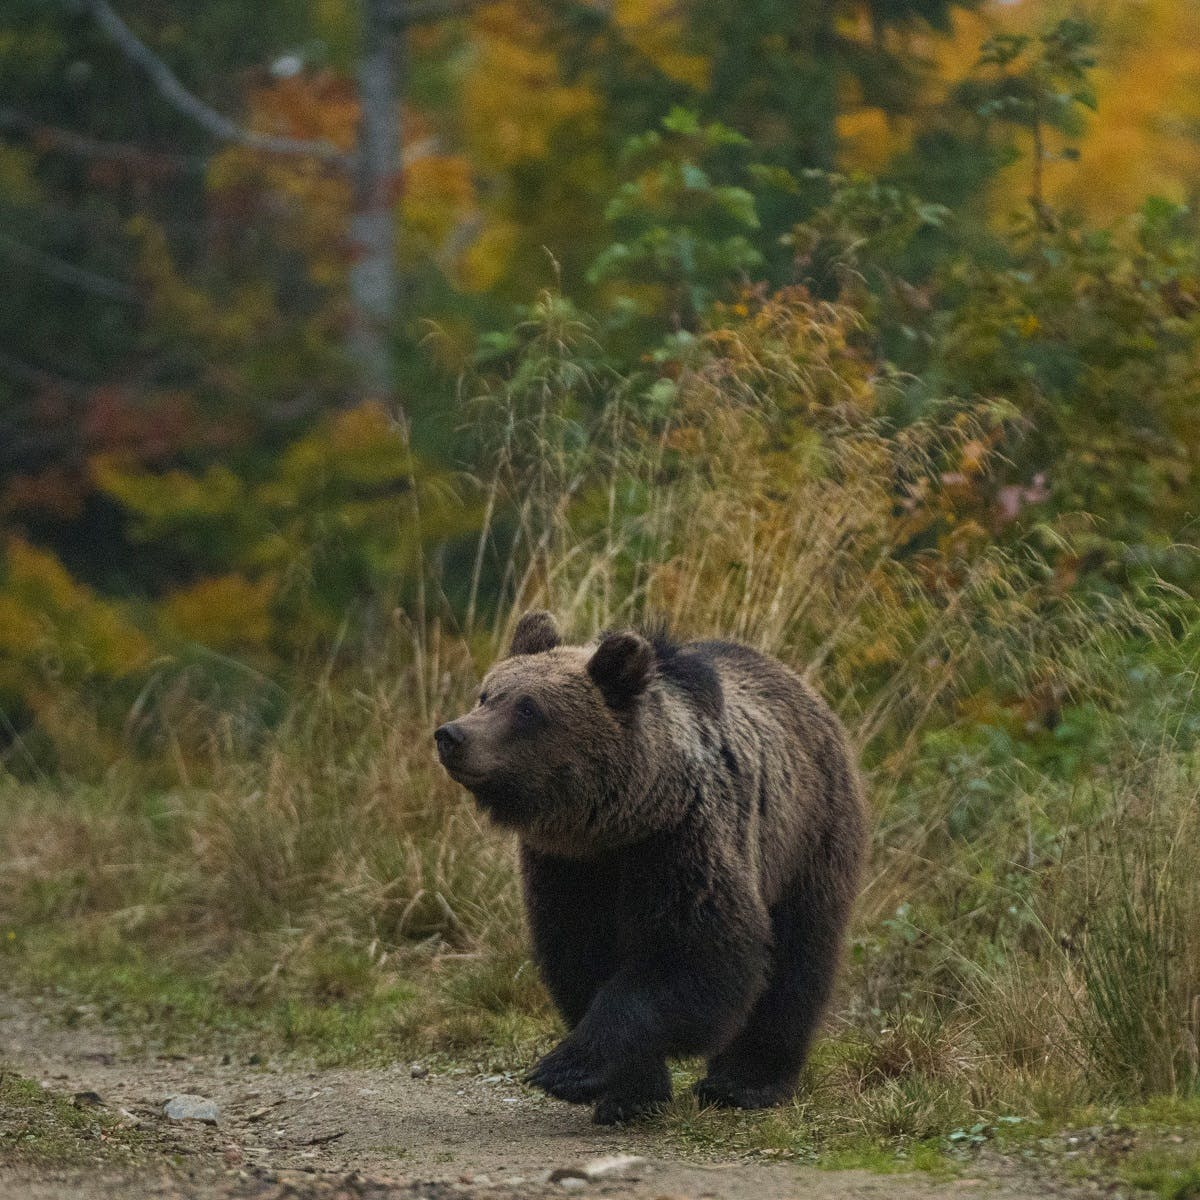 A European brown bear strolls across a forest path in Romania against a backdrop of green and golden leaves